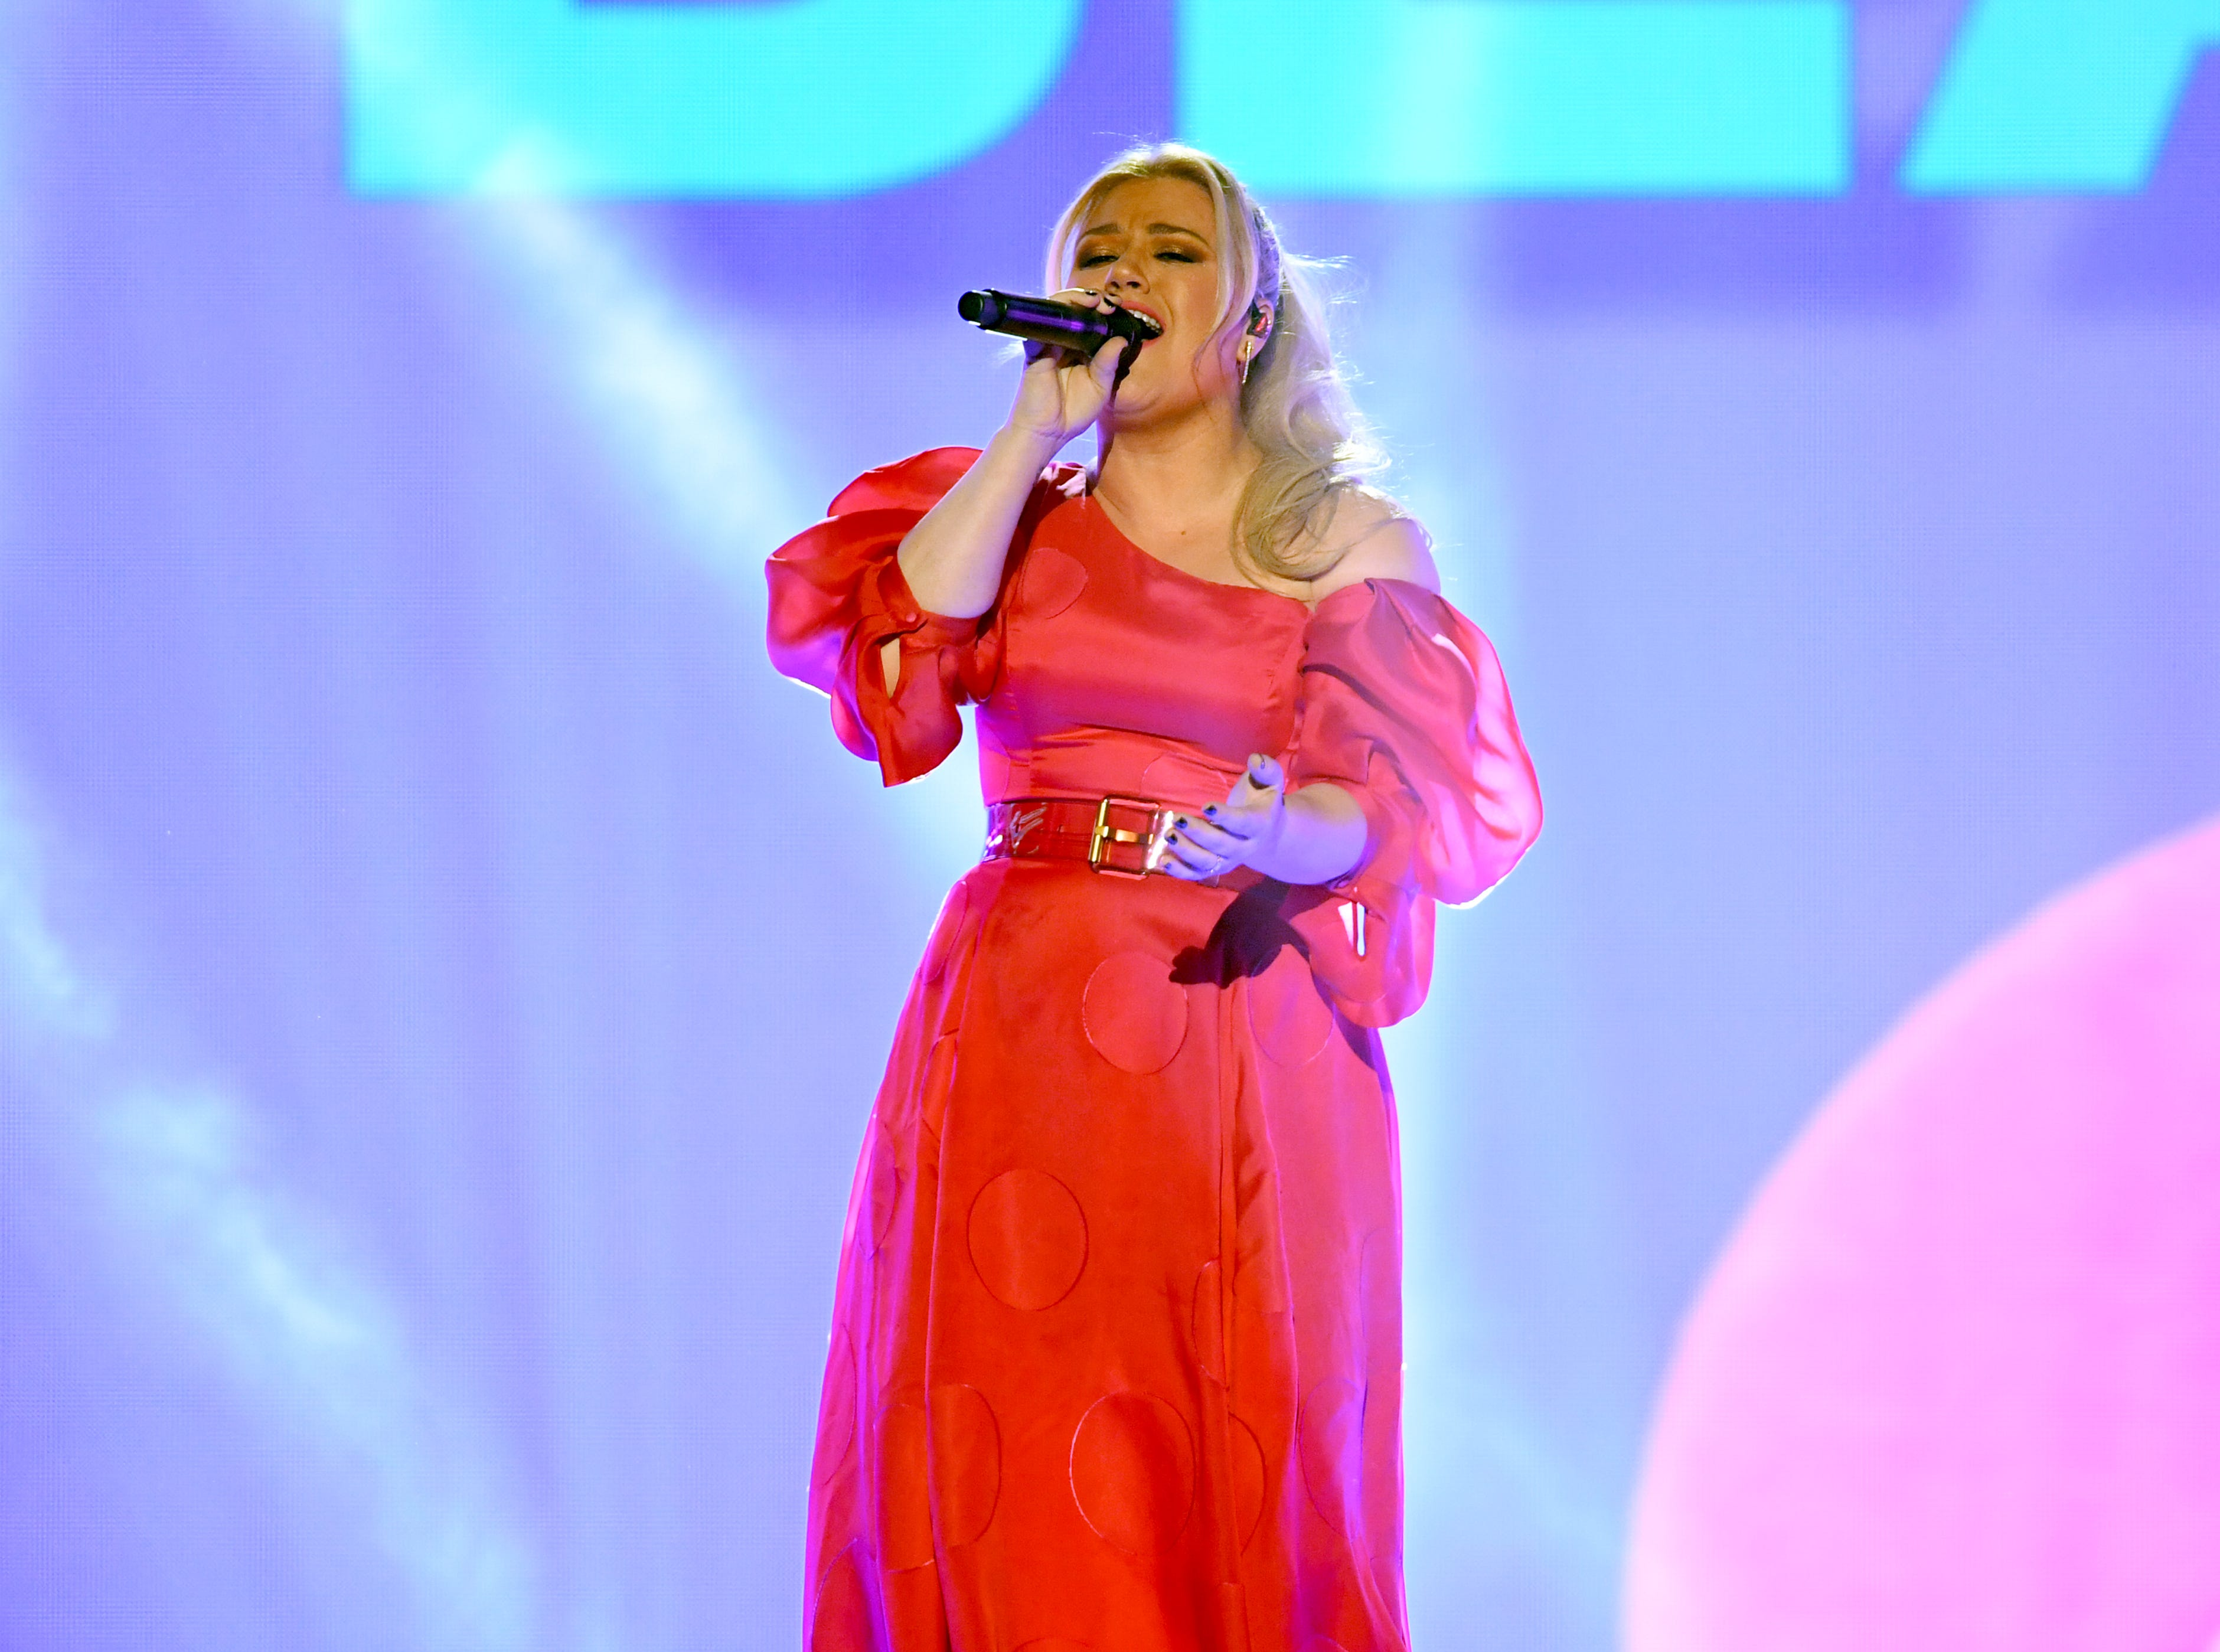 Host Kelly Clarkson performs onstage during the 2019 Billboard Music Awards at MGM Grand Garden Arena on May 01, 2019 in Las Vegas, Nevada.